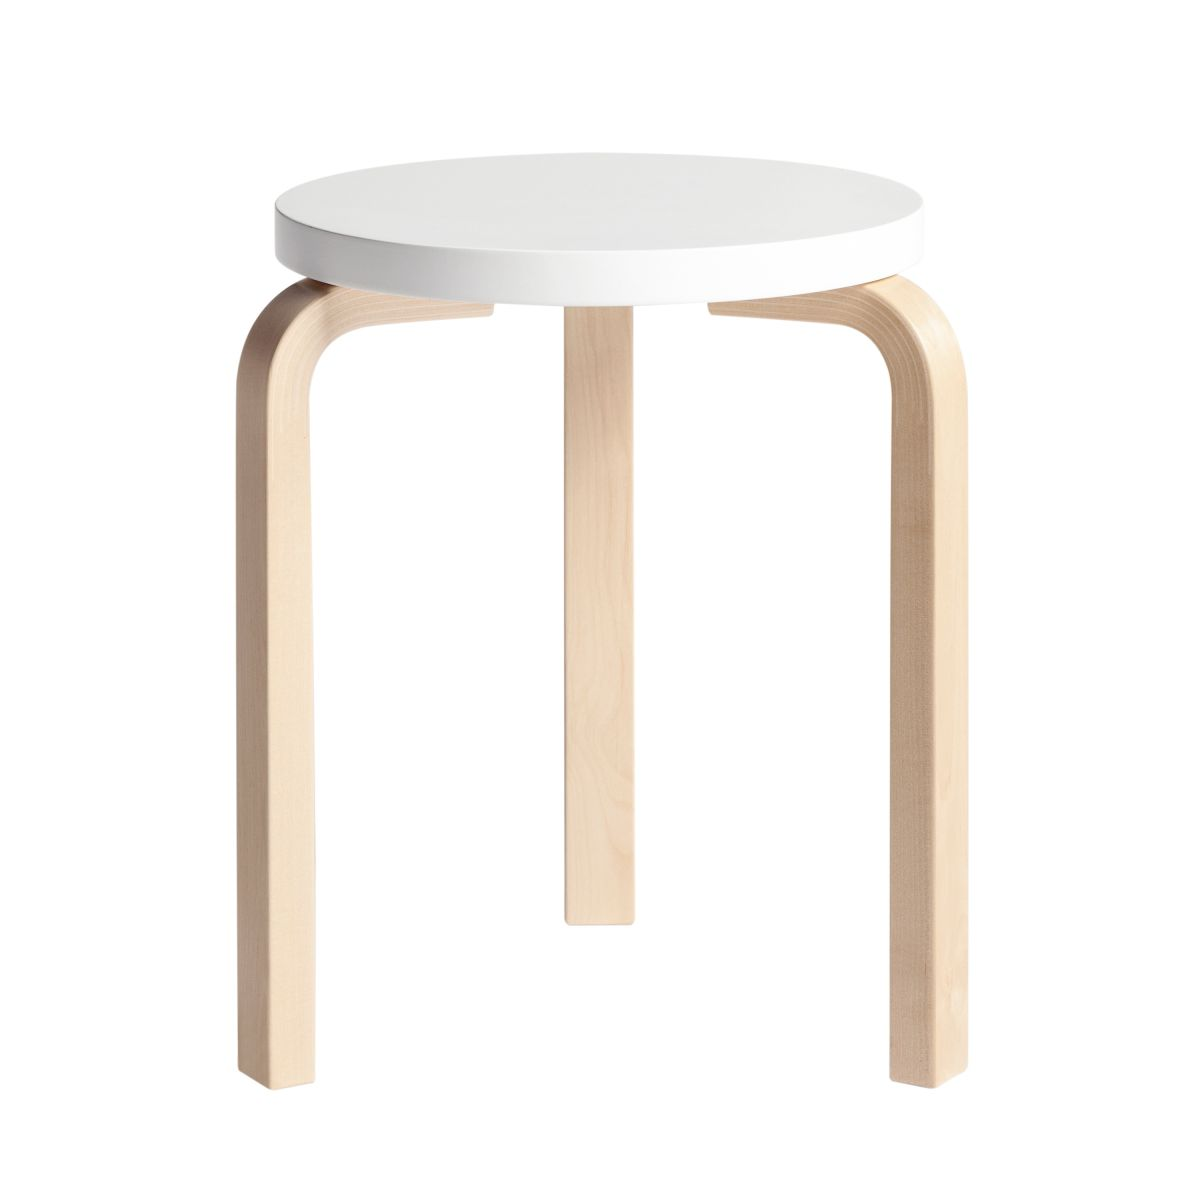 Brilliant Artek Stool 60 Creativecarmelina Interior Chair Design Creativecarmelinacom